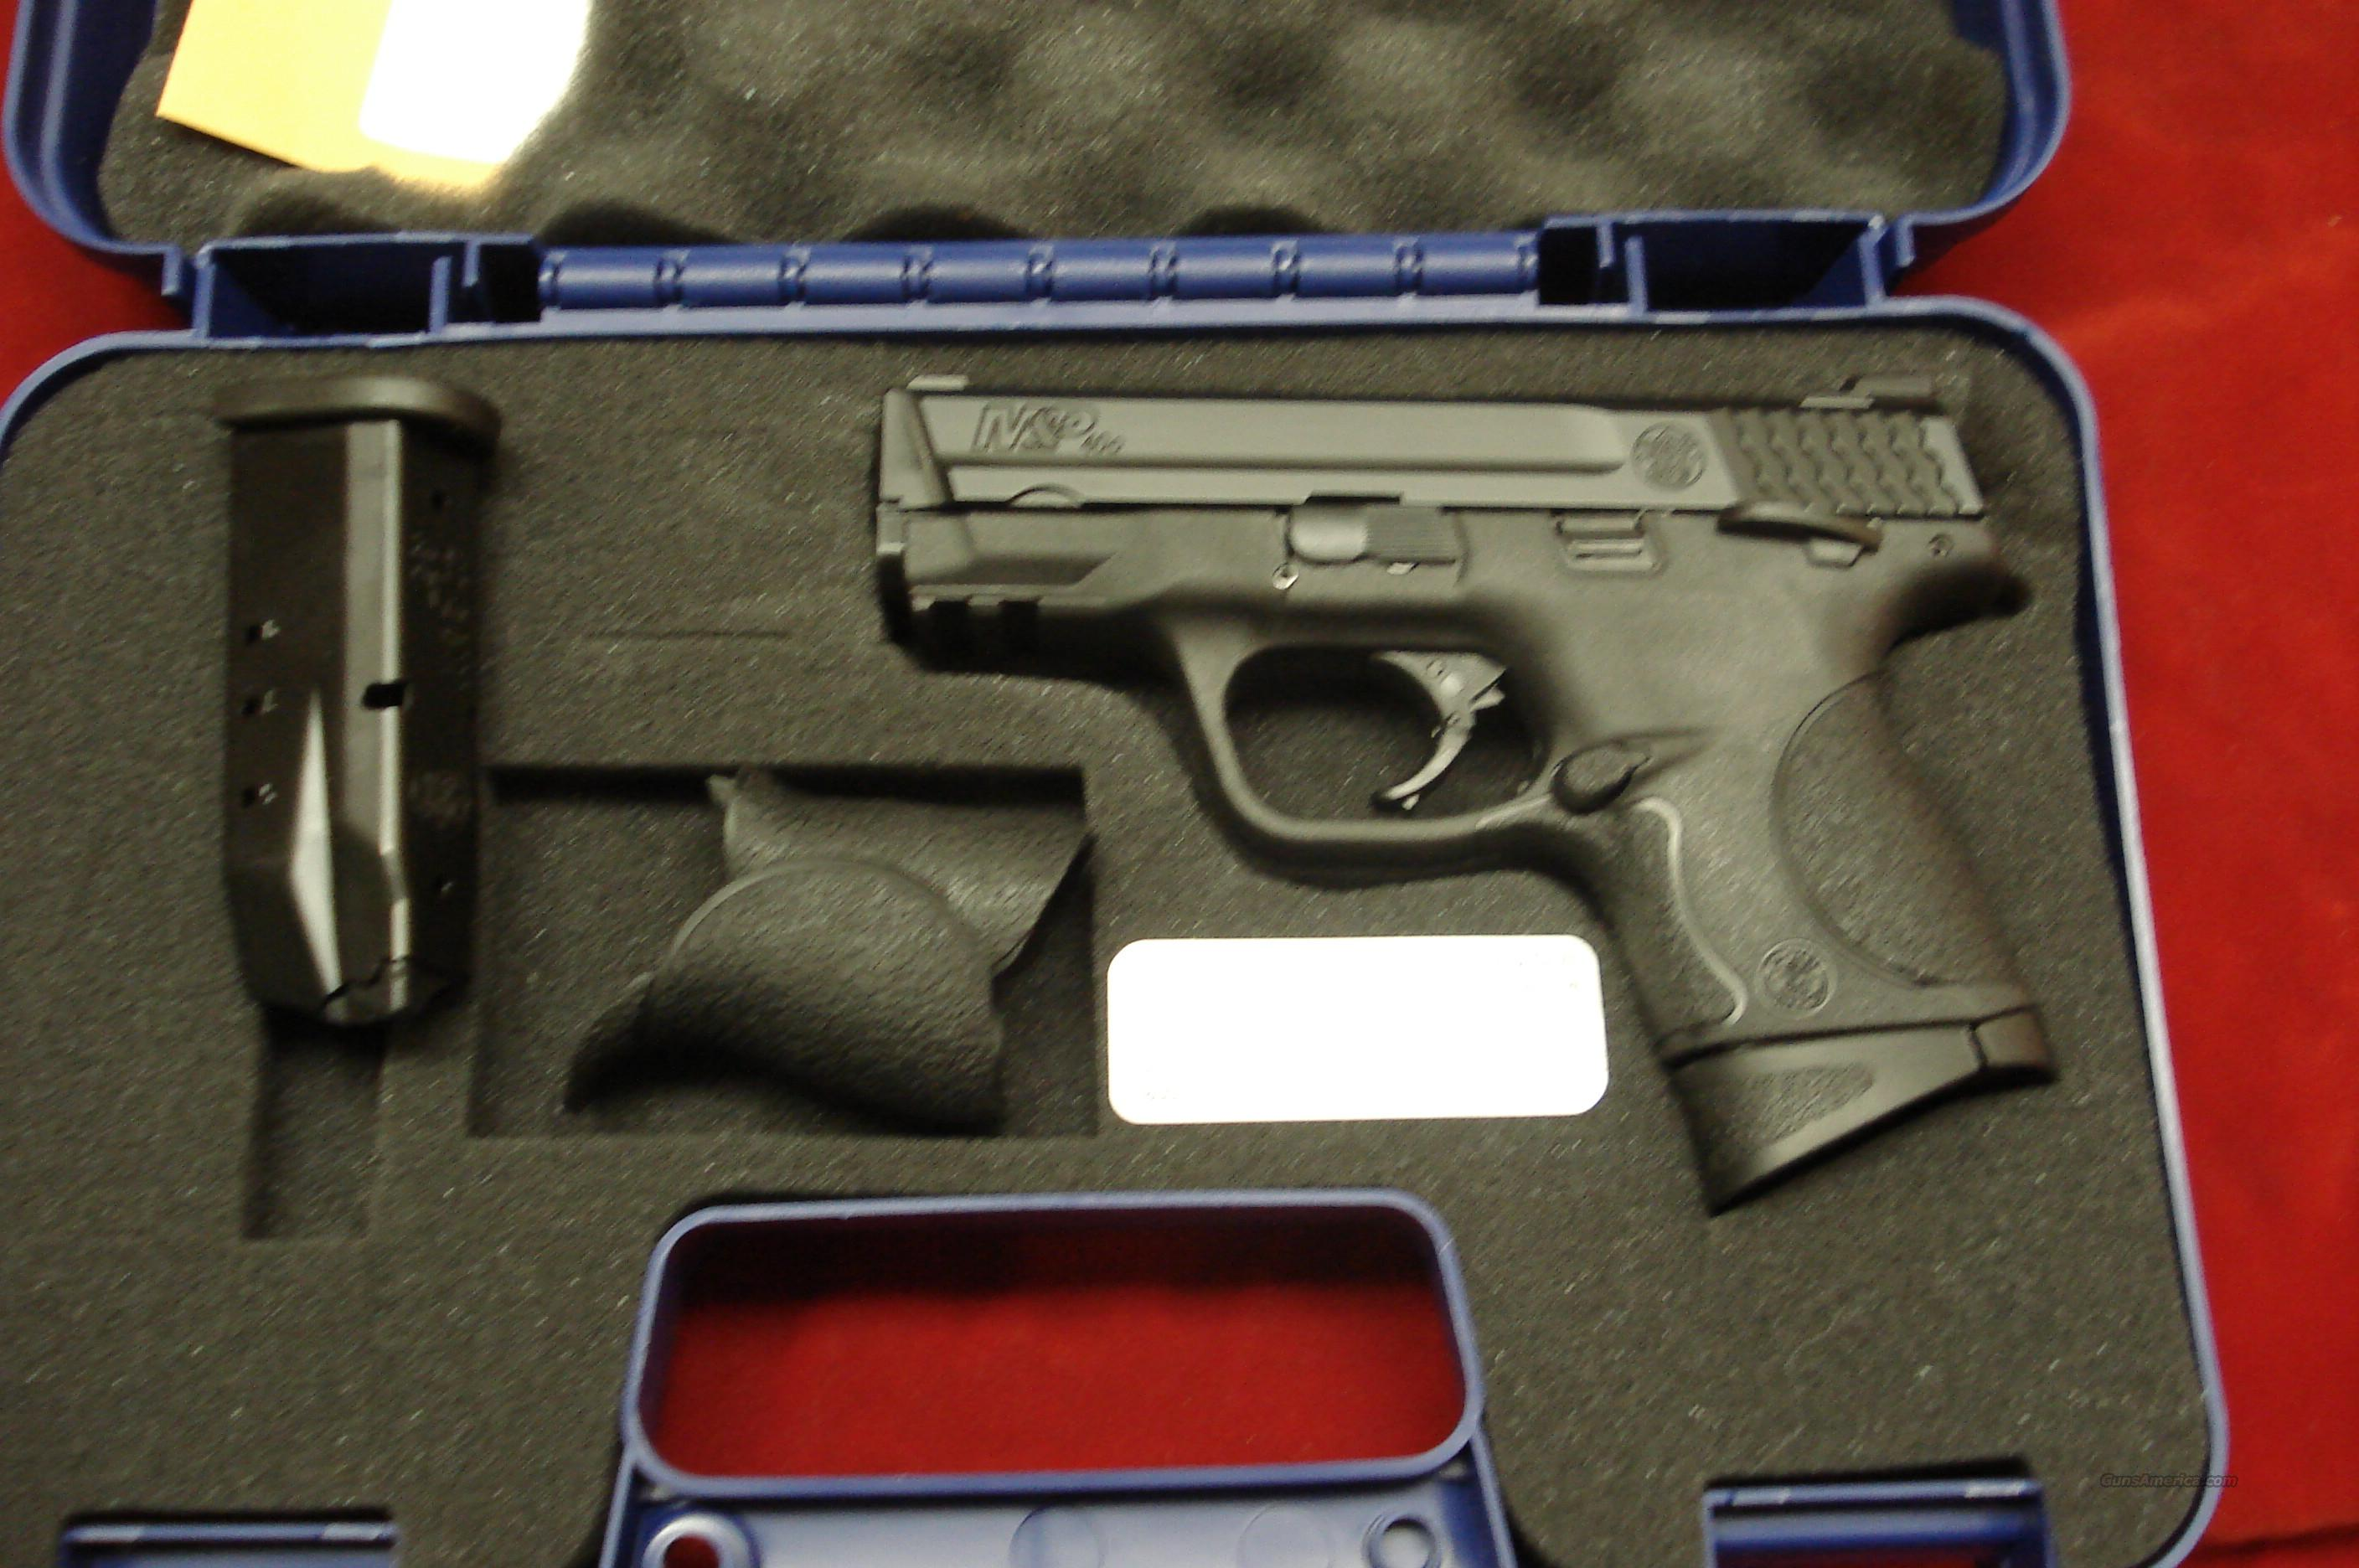 SMITH AND WESSON M&P COMPACT 40CAL W/THUMB SAFETY  NEW   Guns > Pistols > Smith & Wesson Pistols - Autos > Polymer Frame